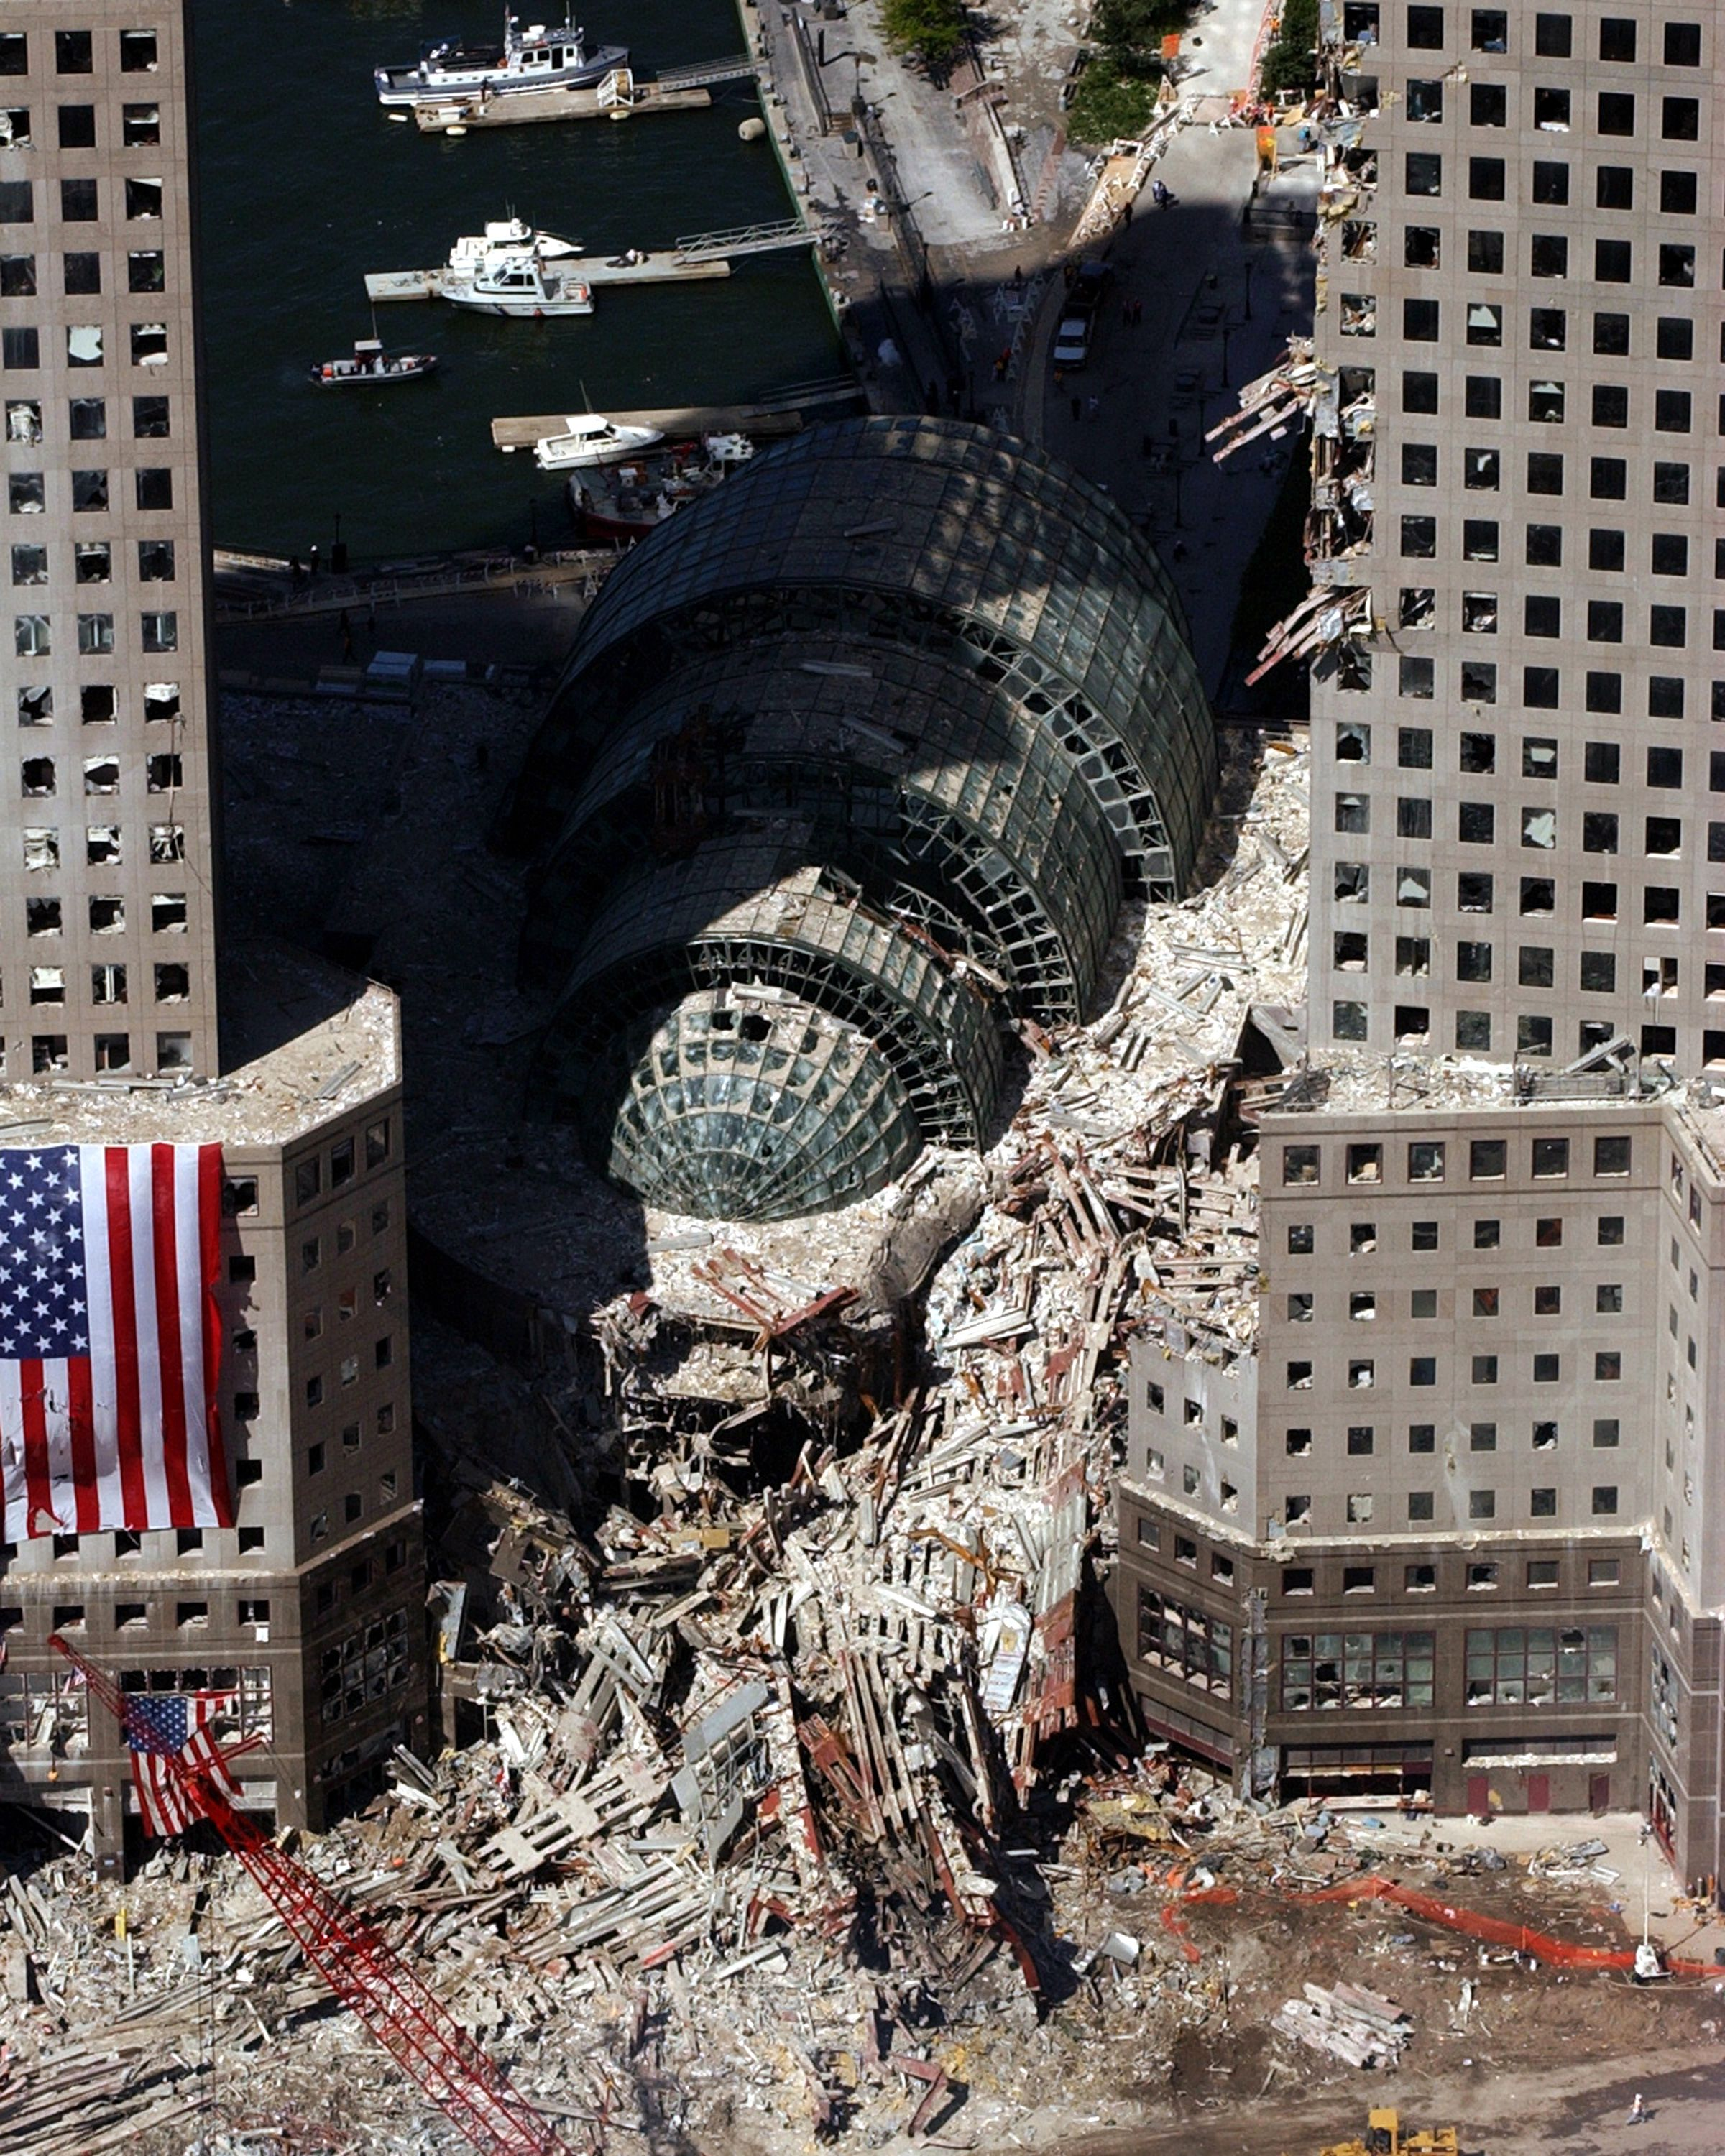 Ground Zero. How Come Iu0027ve Never Seen This Photo? In Any Case It Still  Makes Me Sad.